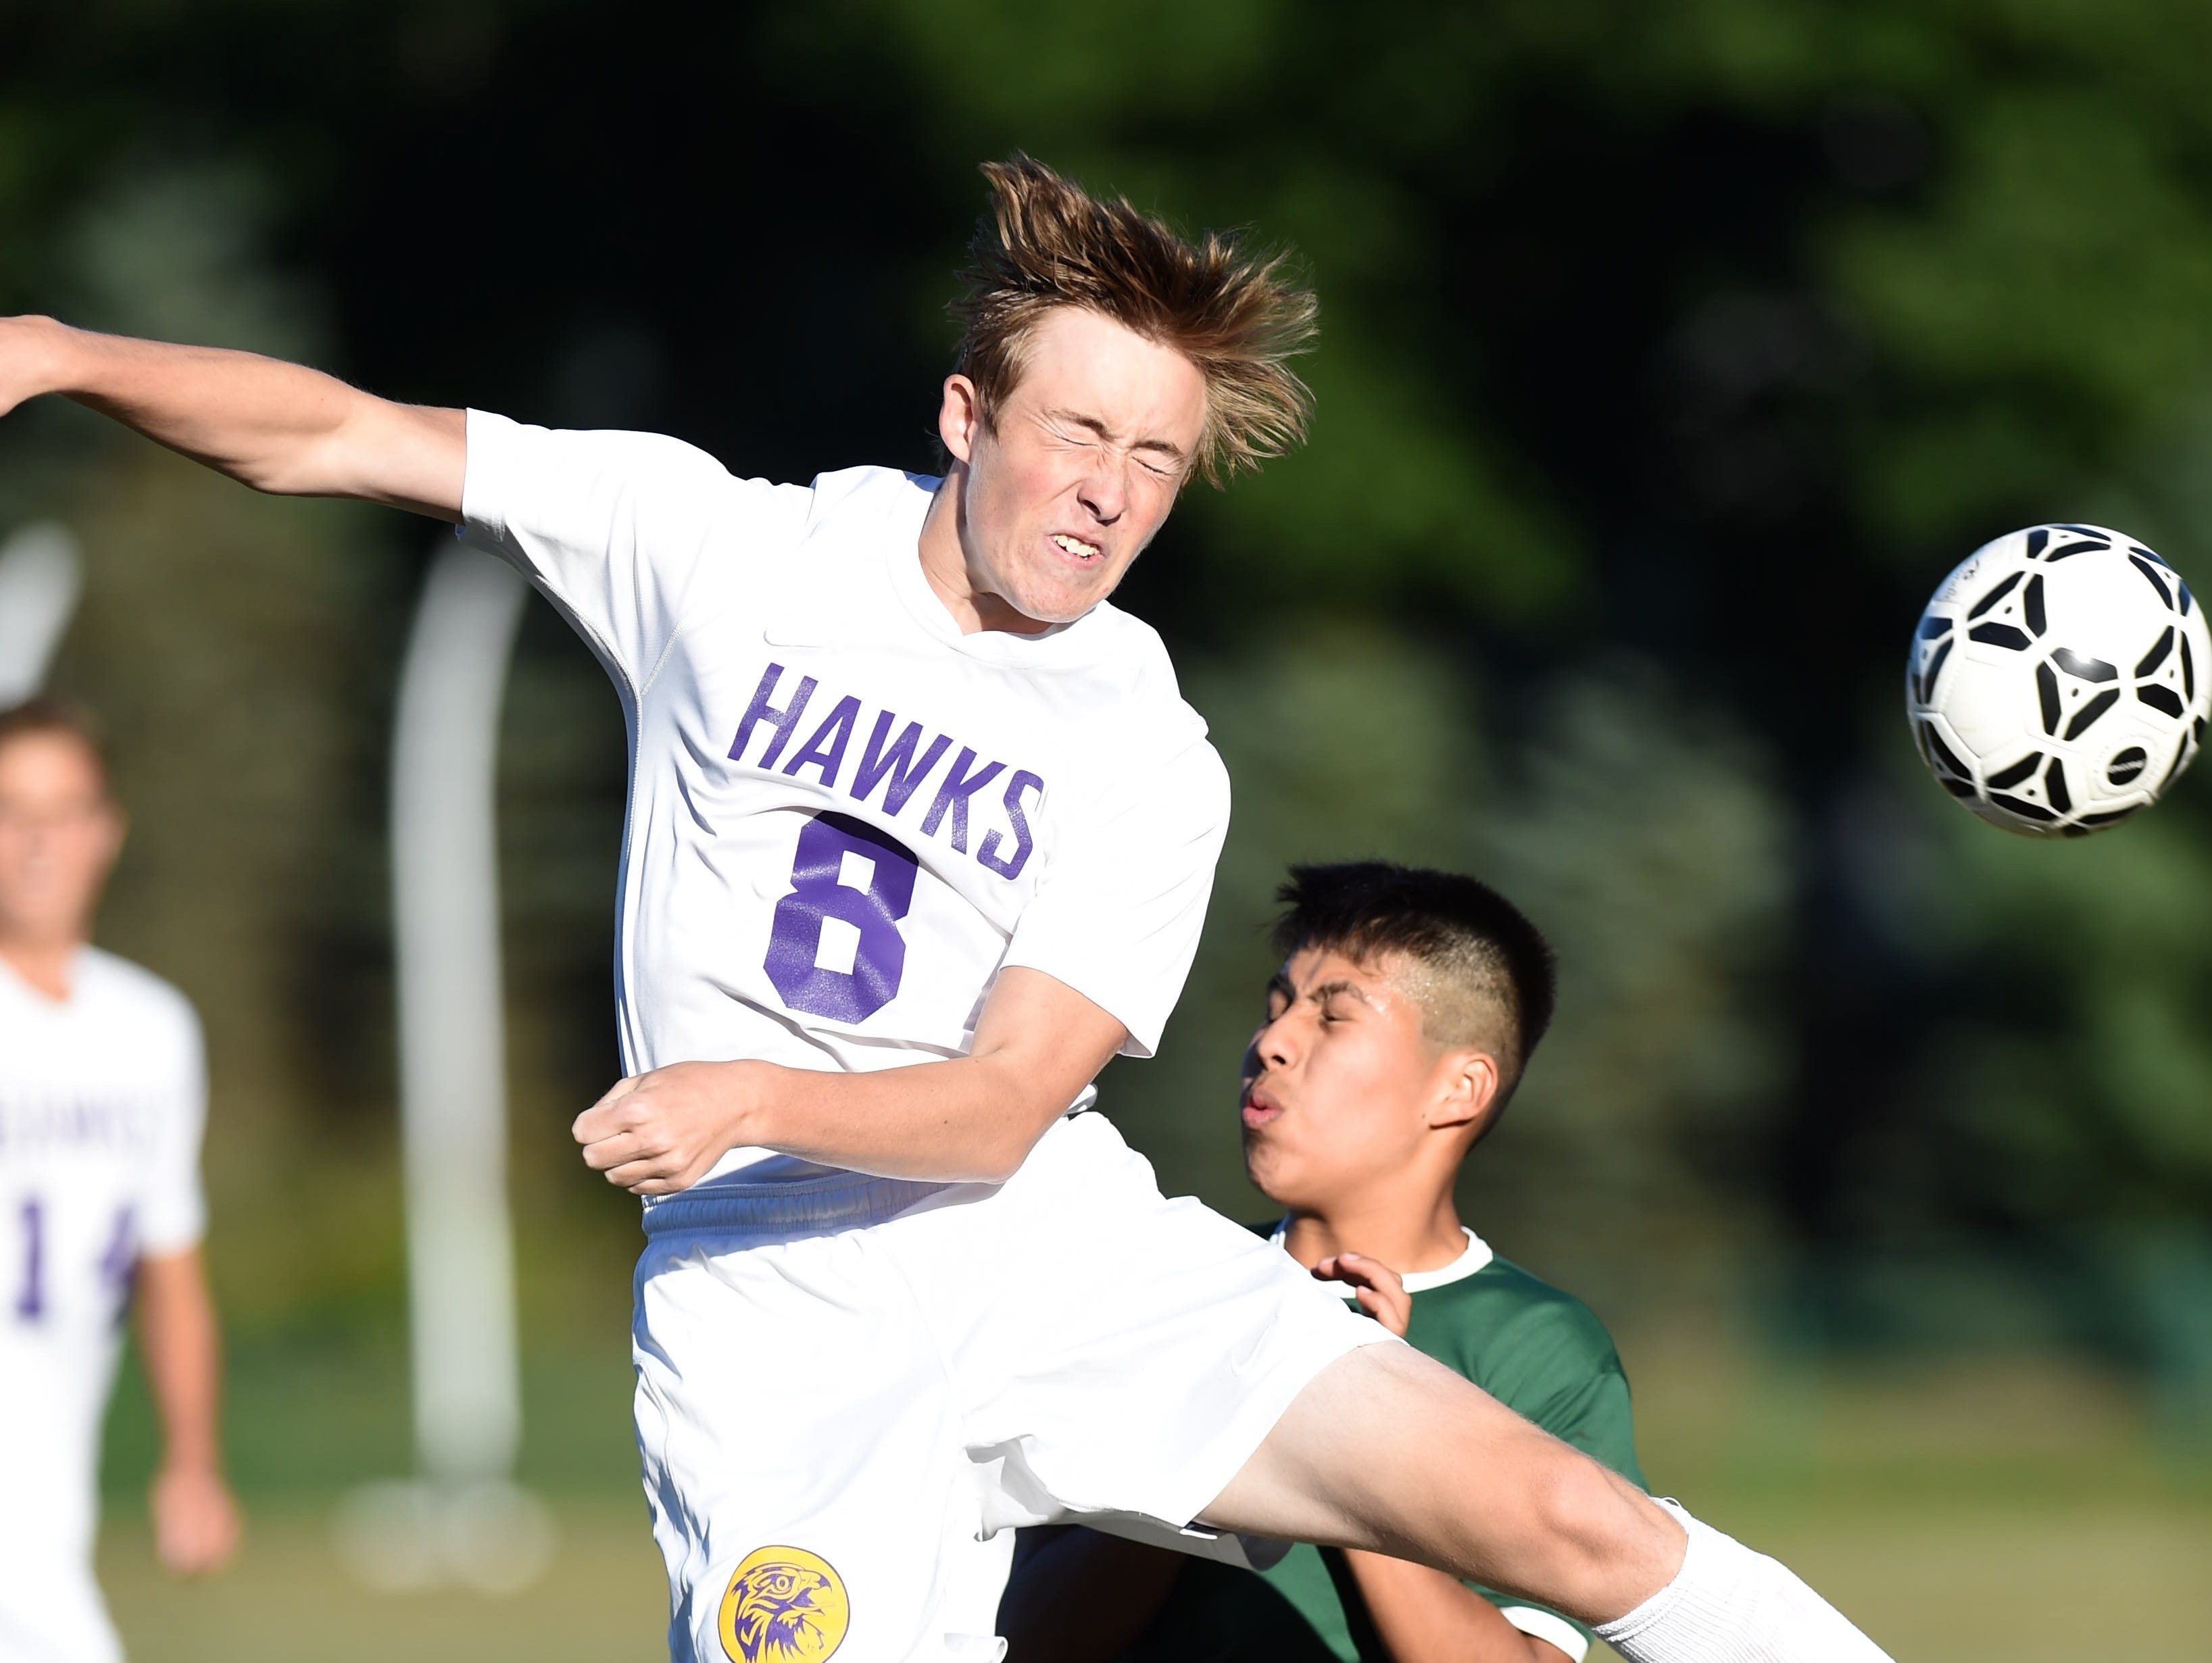 Rhinebeck's Nate Shanahan goes up for a header against Webutuck's Omar Reyes during Thursday's game at Rhinebeck.